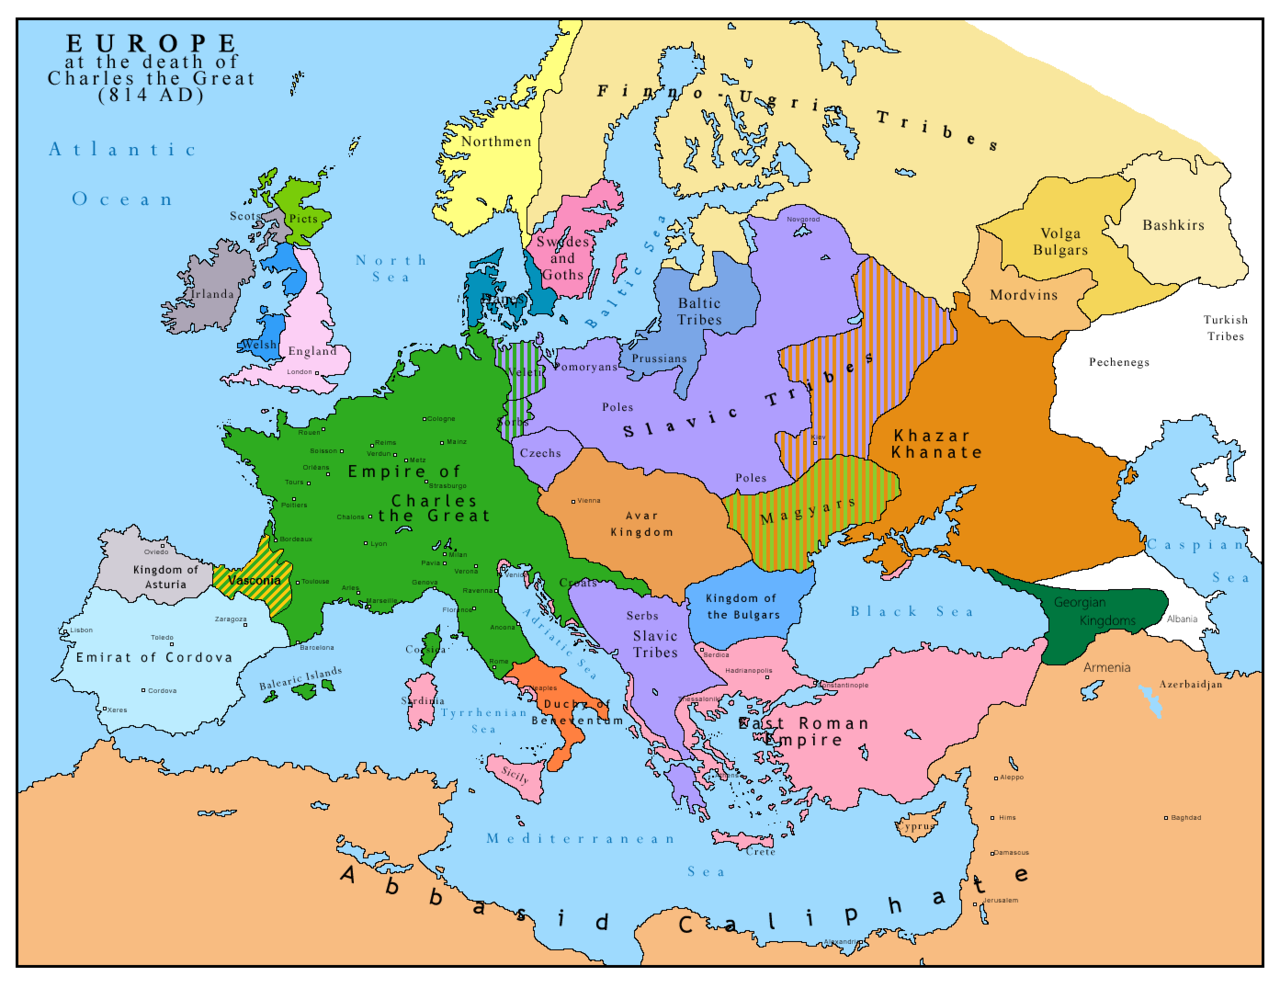 """Technically, Factually, Literally, Linguistically, Religiously, Constitutionally, Civilizationally, Nominally, The Frankish Empire Was """"Rome"""". Much Of Rome Had Been Invaded By The Islamists, But Occidental Rome (the Franks) and Oriental Rome (Constantinople) Blocked Further Islamist Invasion, In 13 Centuries Of War For The Former."""